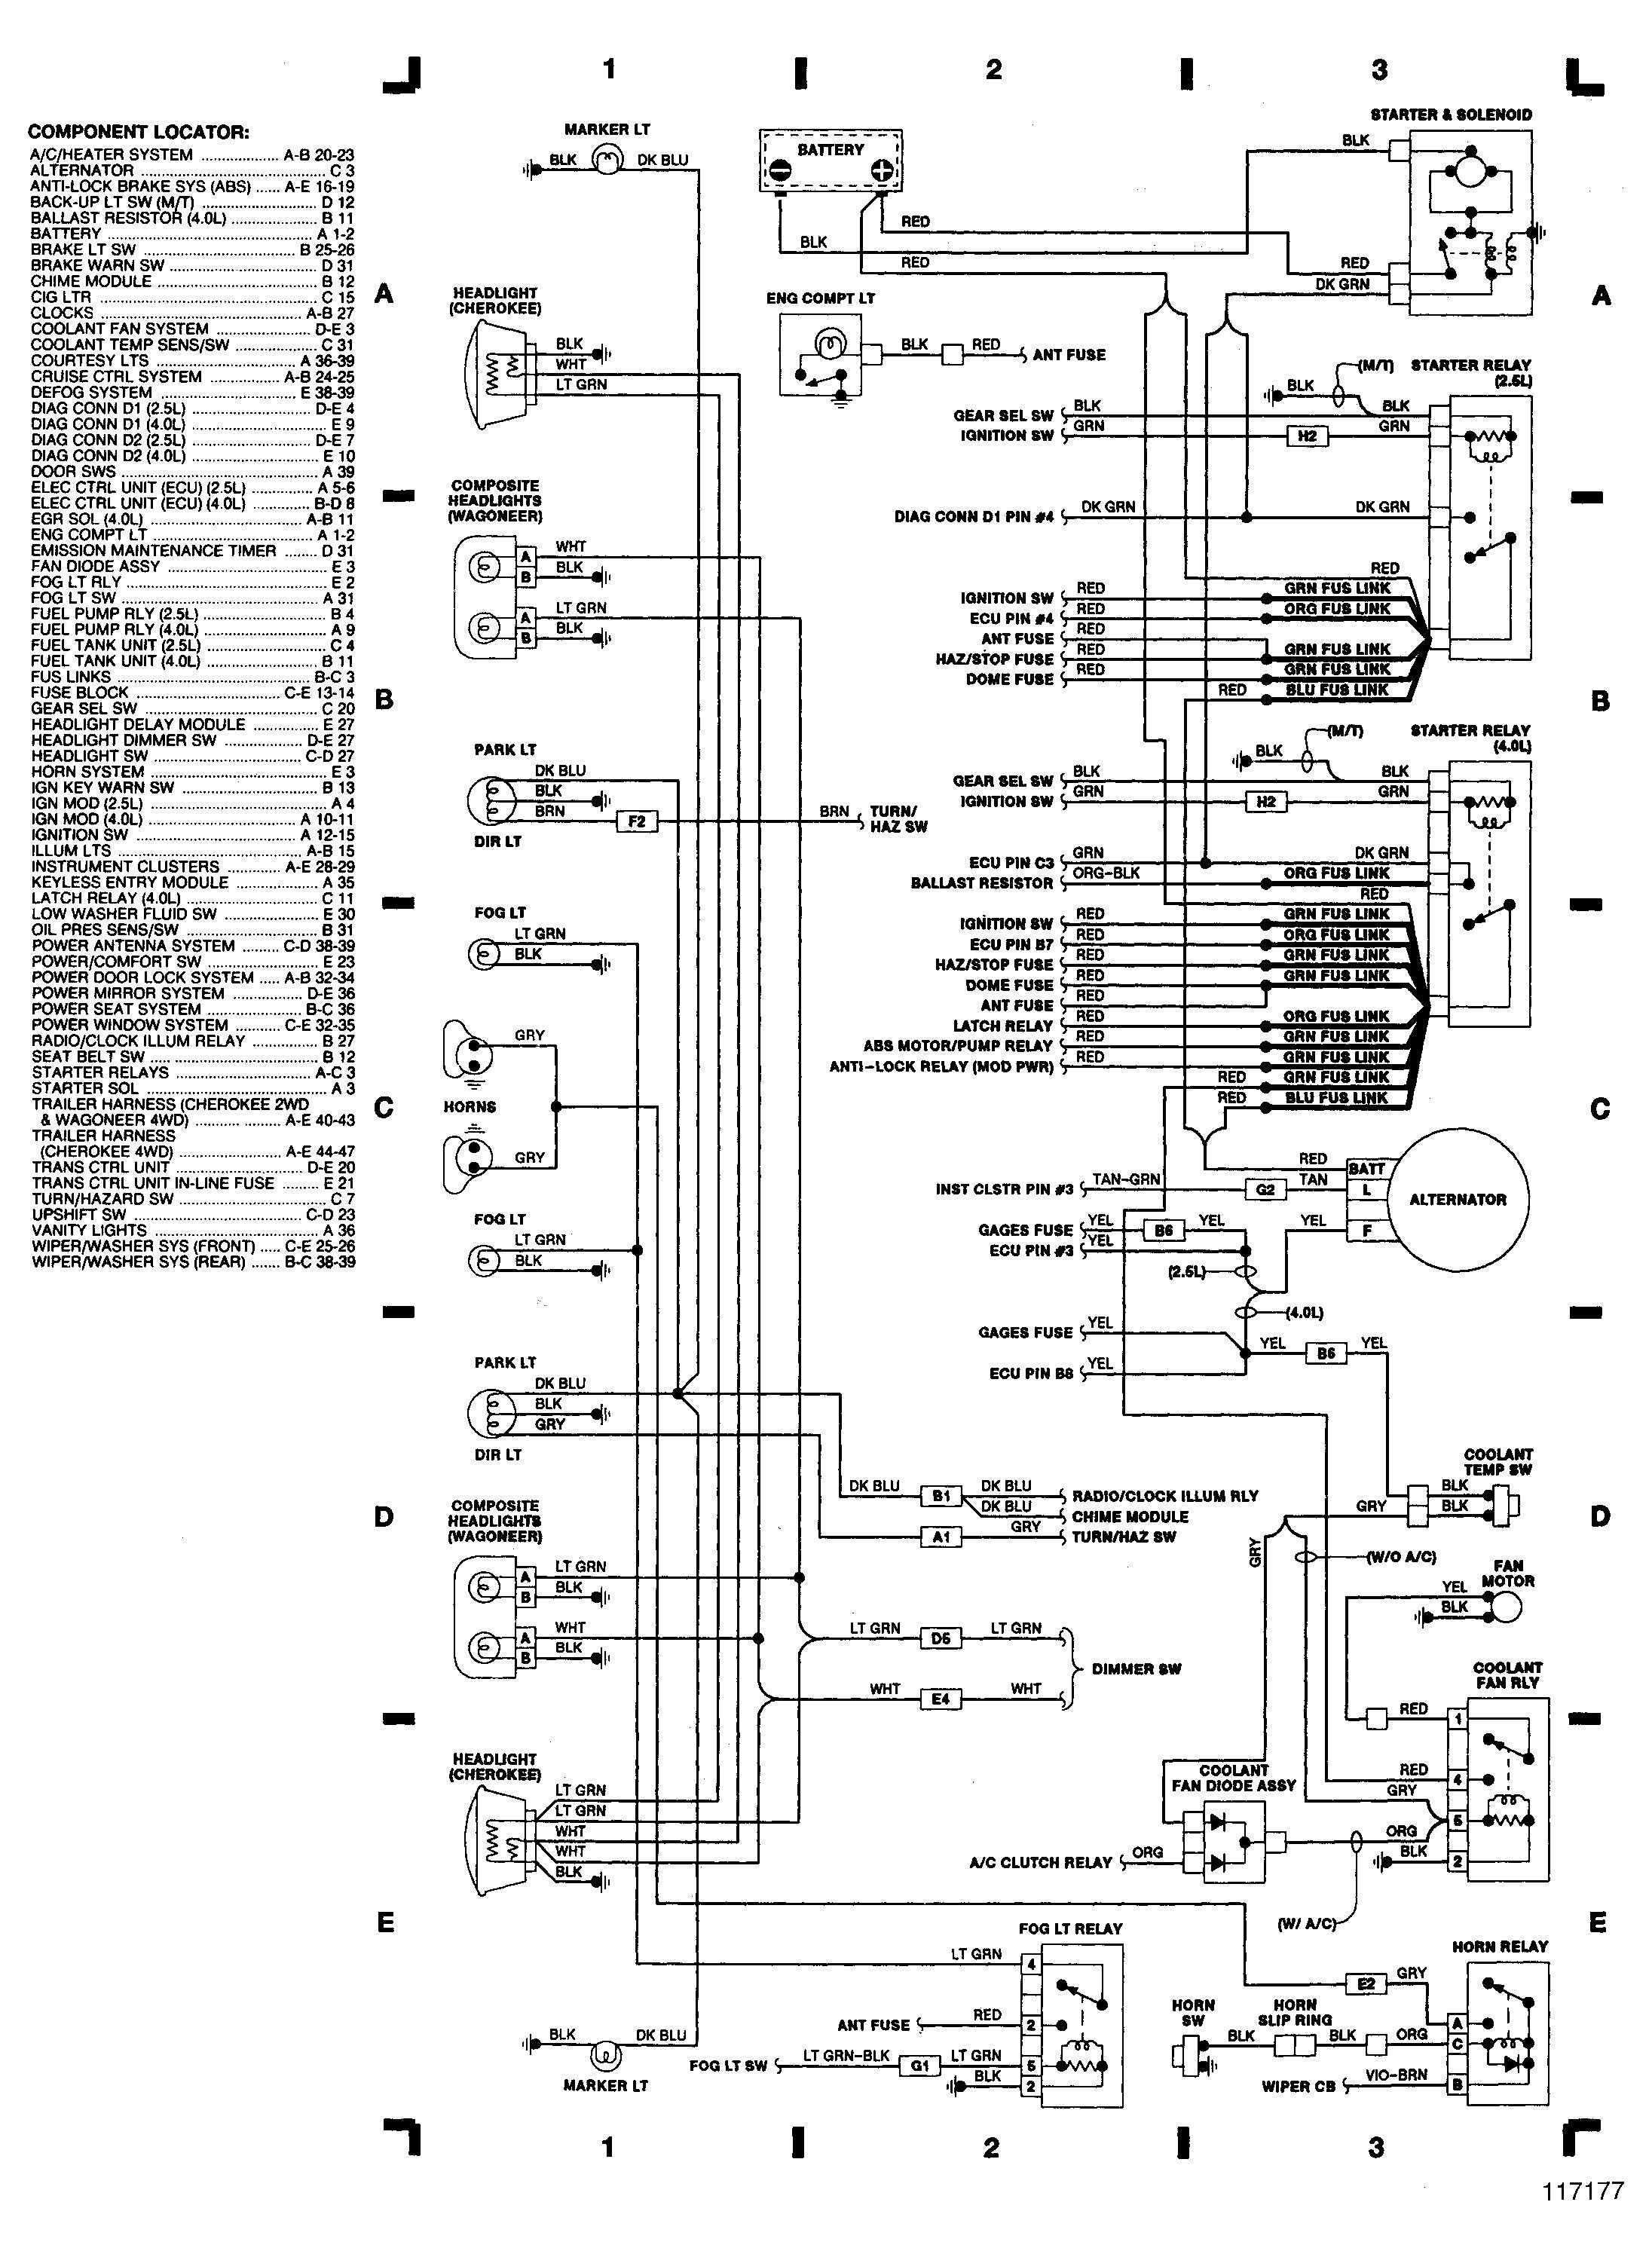 86 Jeep Wiring | Wiring Diagram  Jeep Wiring Diagram on 86 mustang wiring diagram, 86 chevy wiring diagram, 86 corvette wiring diagram, 86 bronco wiring diagram, 86 camaro wiring diagram, 86 ford wiring diagram,